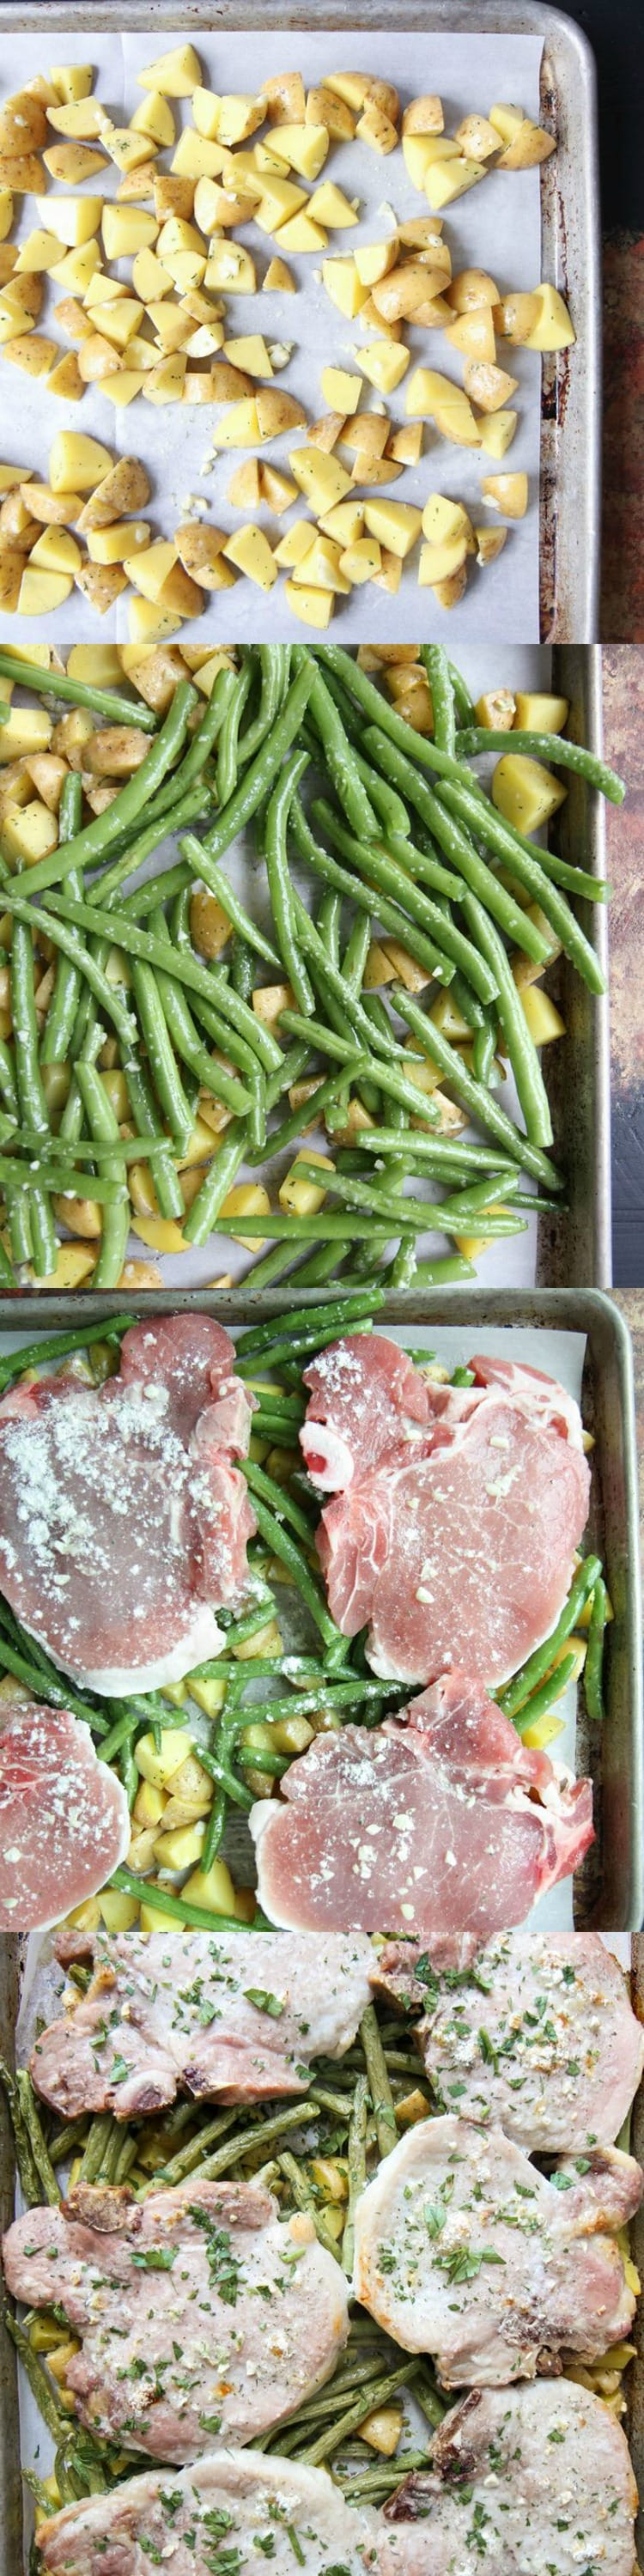 Sheet Pan Ranch Chops and Veggies from MomAdvice.com